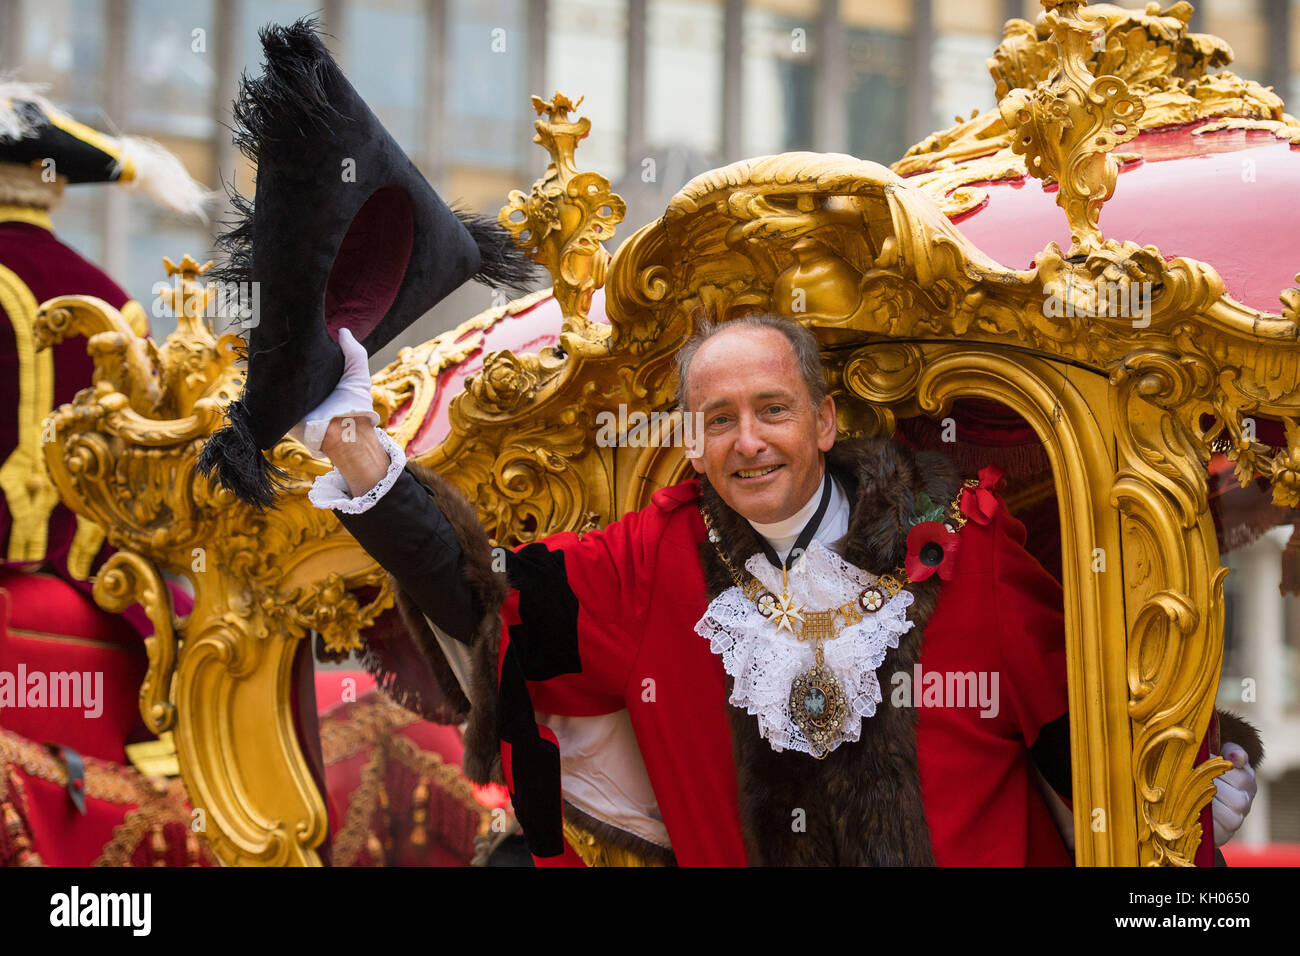 The new Lord Mayor of London Charles Bowman waves from his carriage during the parade at the Lord Mayor's Show - Stock Image